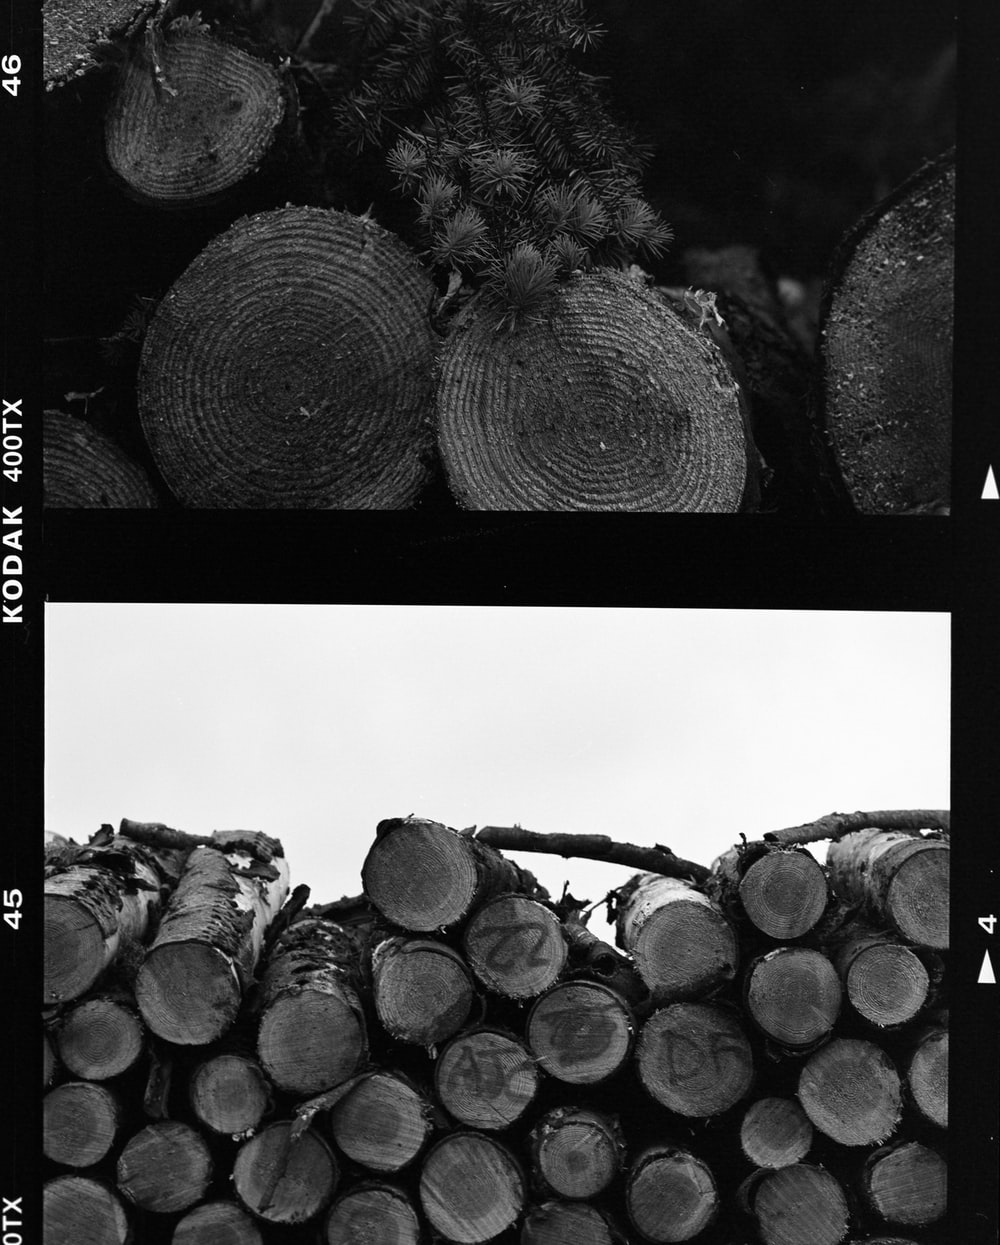 grayscale photo of pile of wood logs